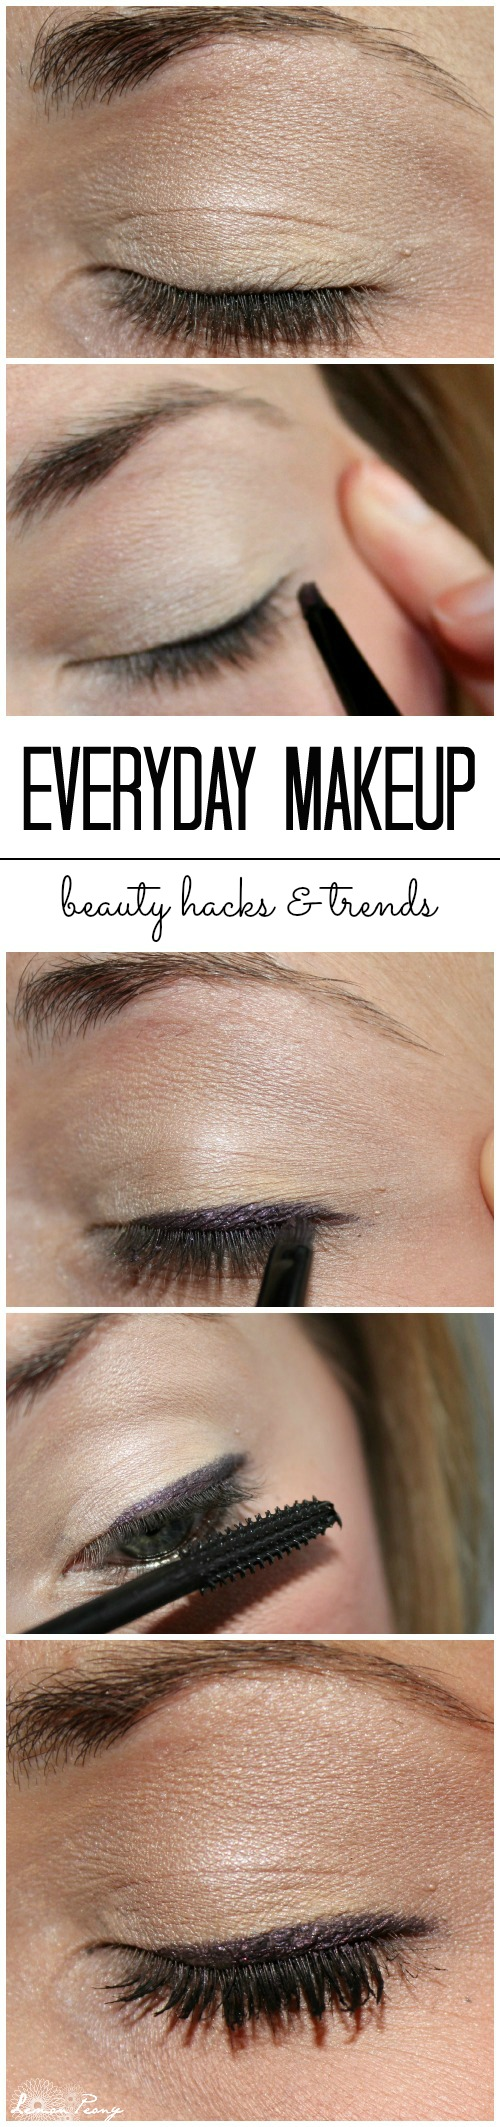 5 Mascara Hacks & Easy Makeup Tips and Tricks!